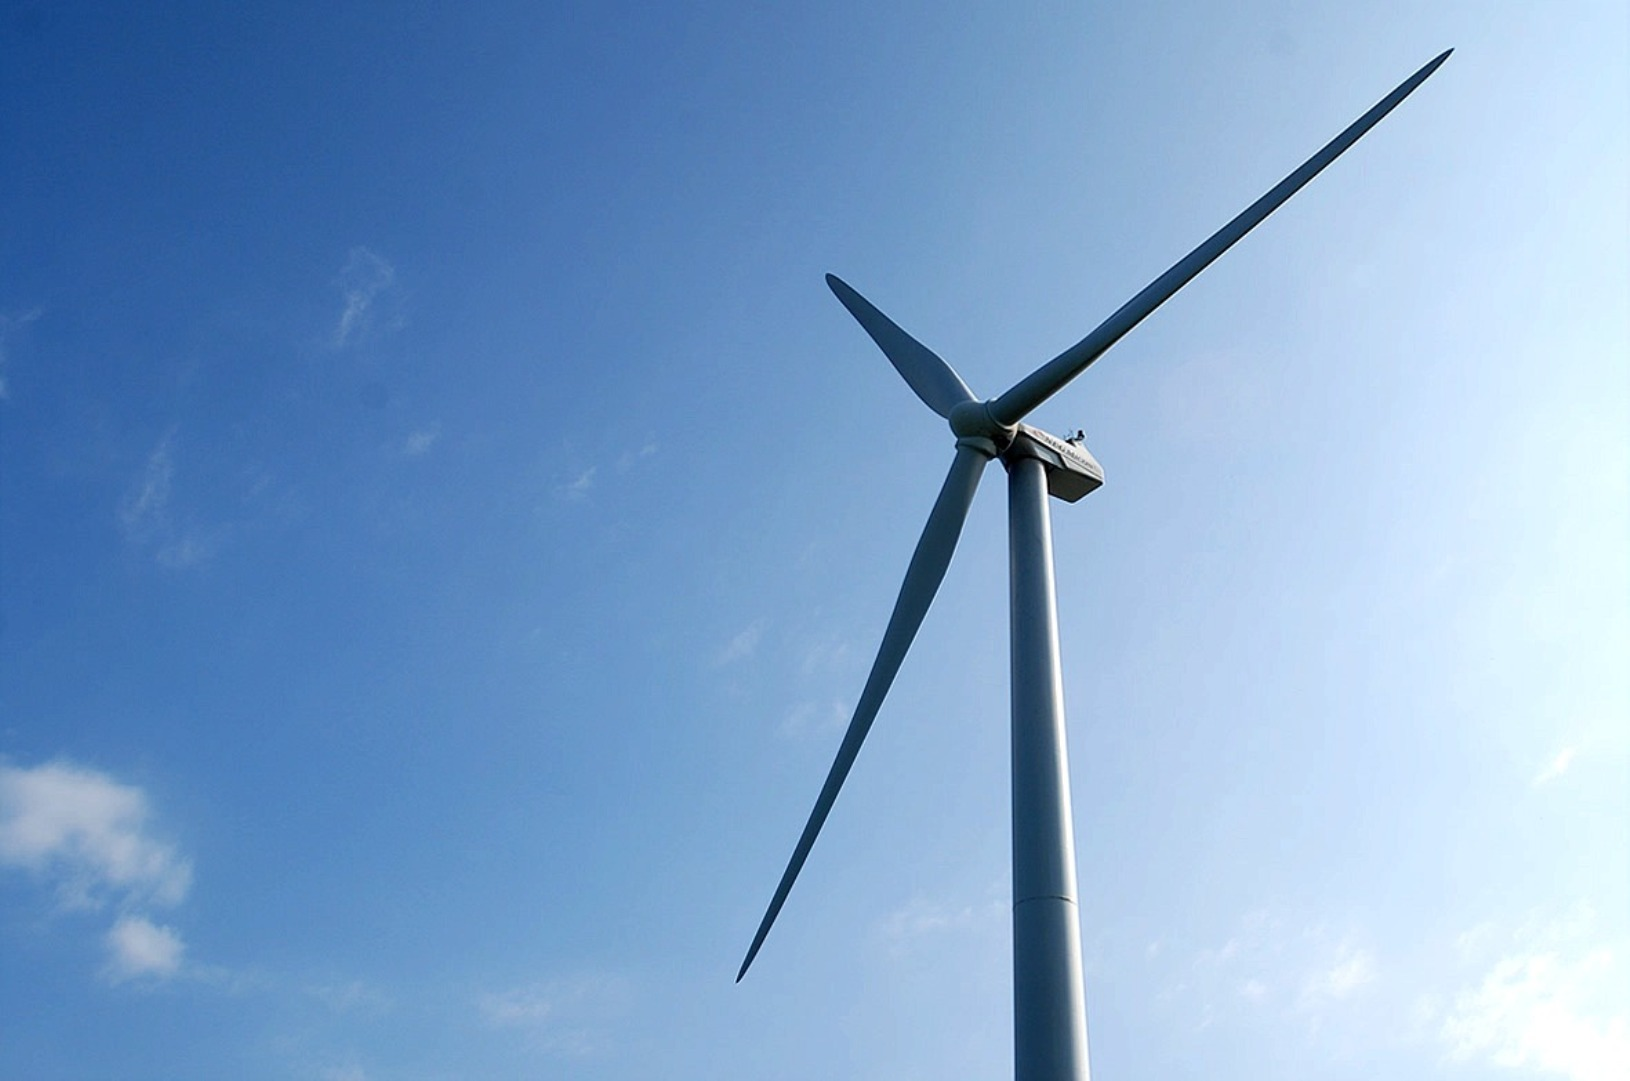 MP hits out at council planners over wind turbine plans